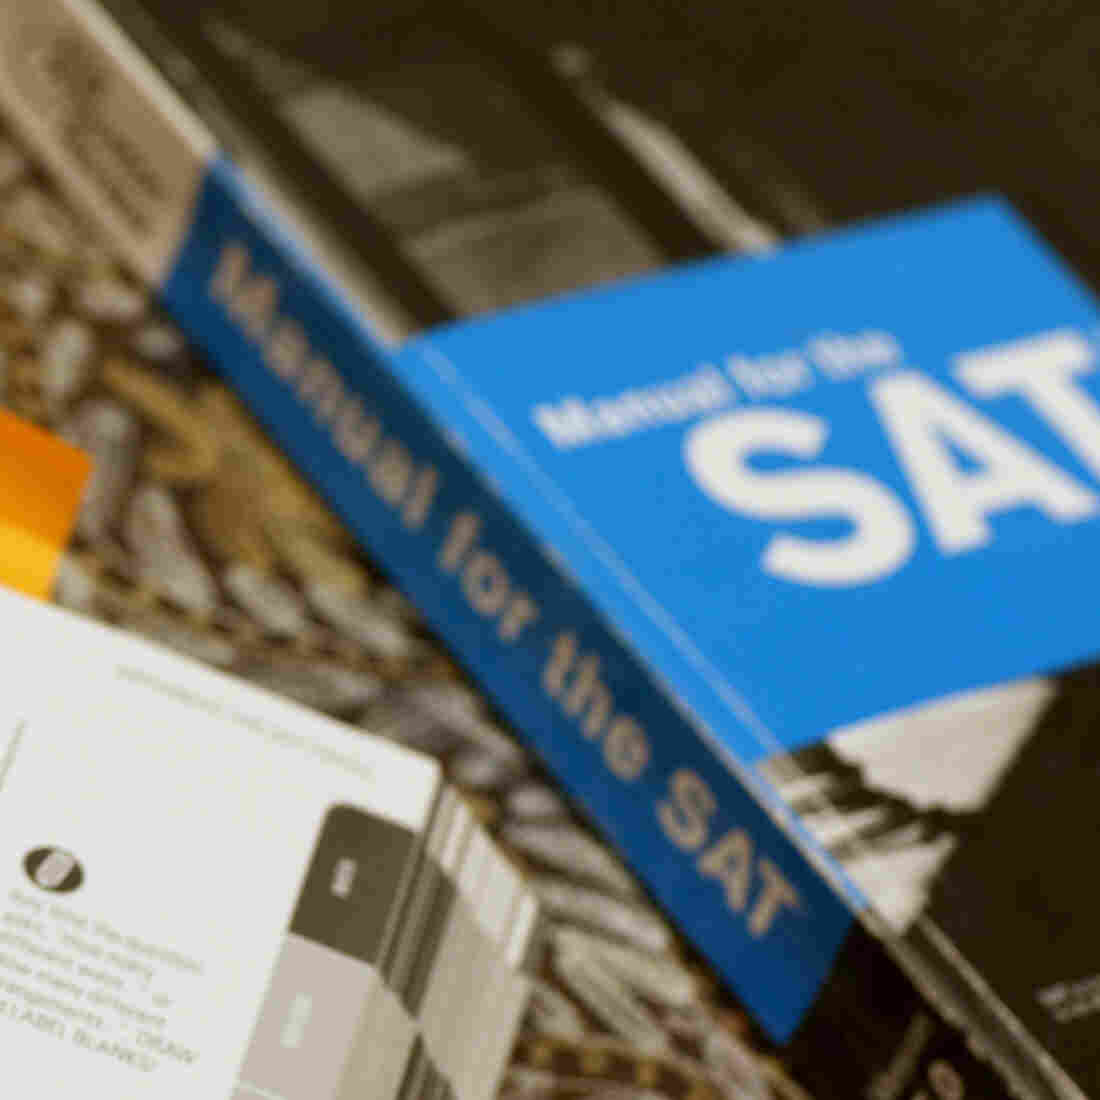 Test Preppers, Take Note: Free SAT Study Tools Could Signal Sea Change